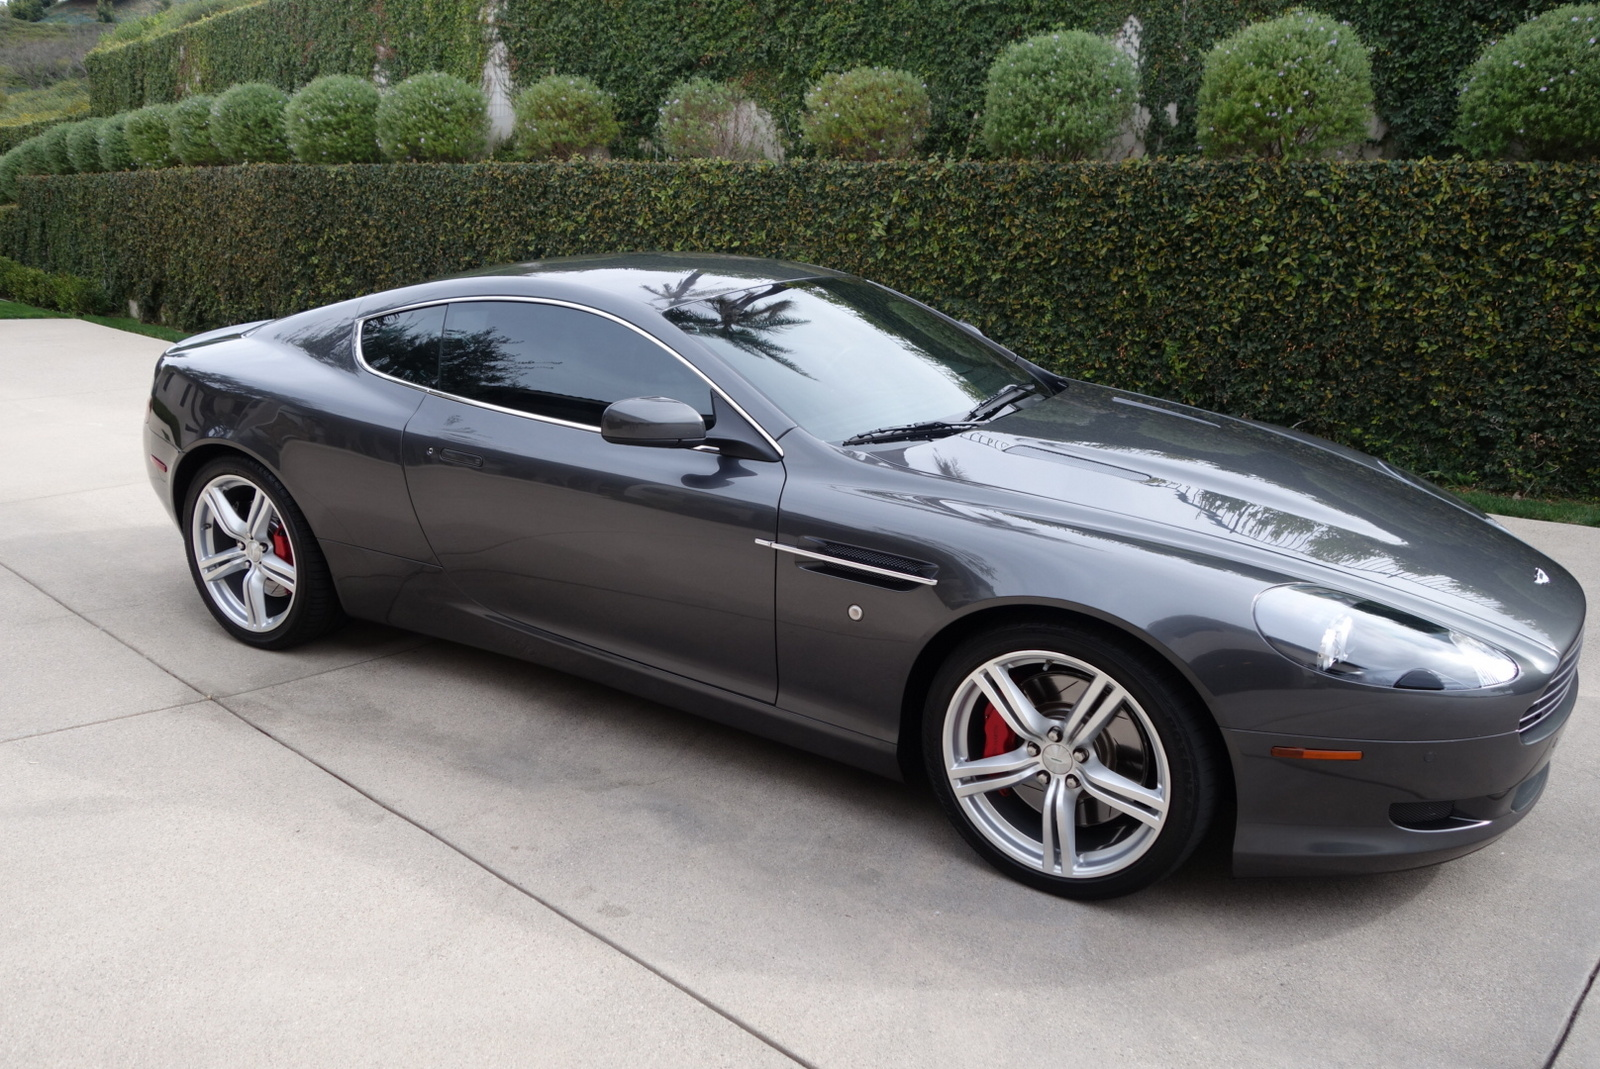 Aston Martin Models Of The 1960s moreover 2006 Aston Martin V12 Vanquish Pictures C7923 as well Tecplanos01 moreover Second James Bond Aston Martin Db5 For Sale 21374 as well 2011 Zenvo St1 Price. on aston martin db5 specs